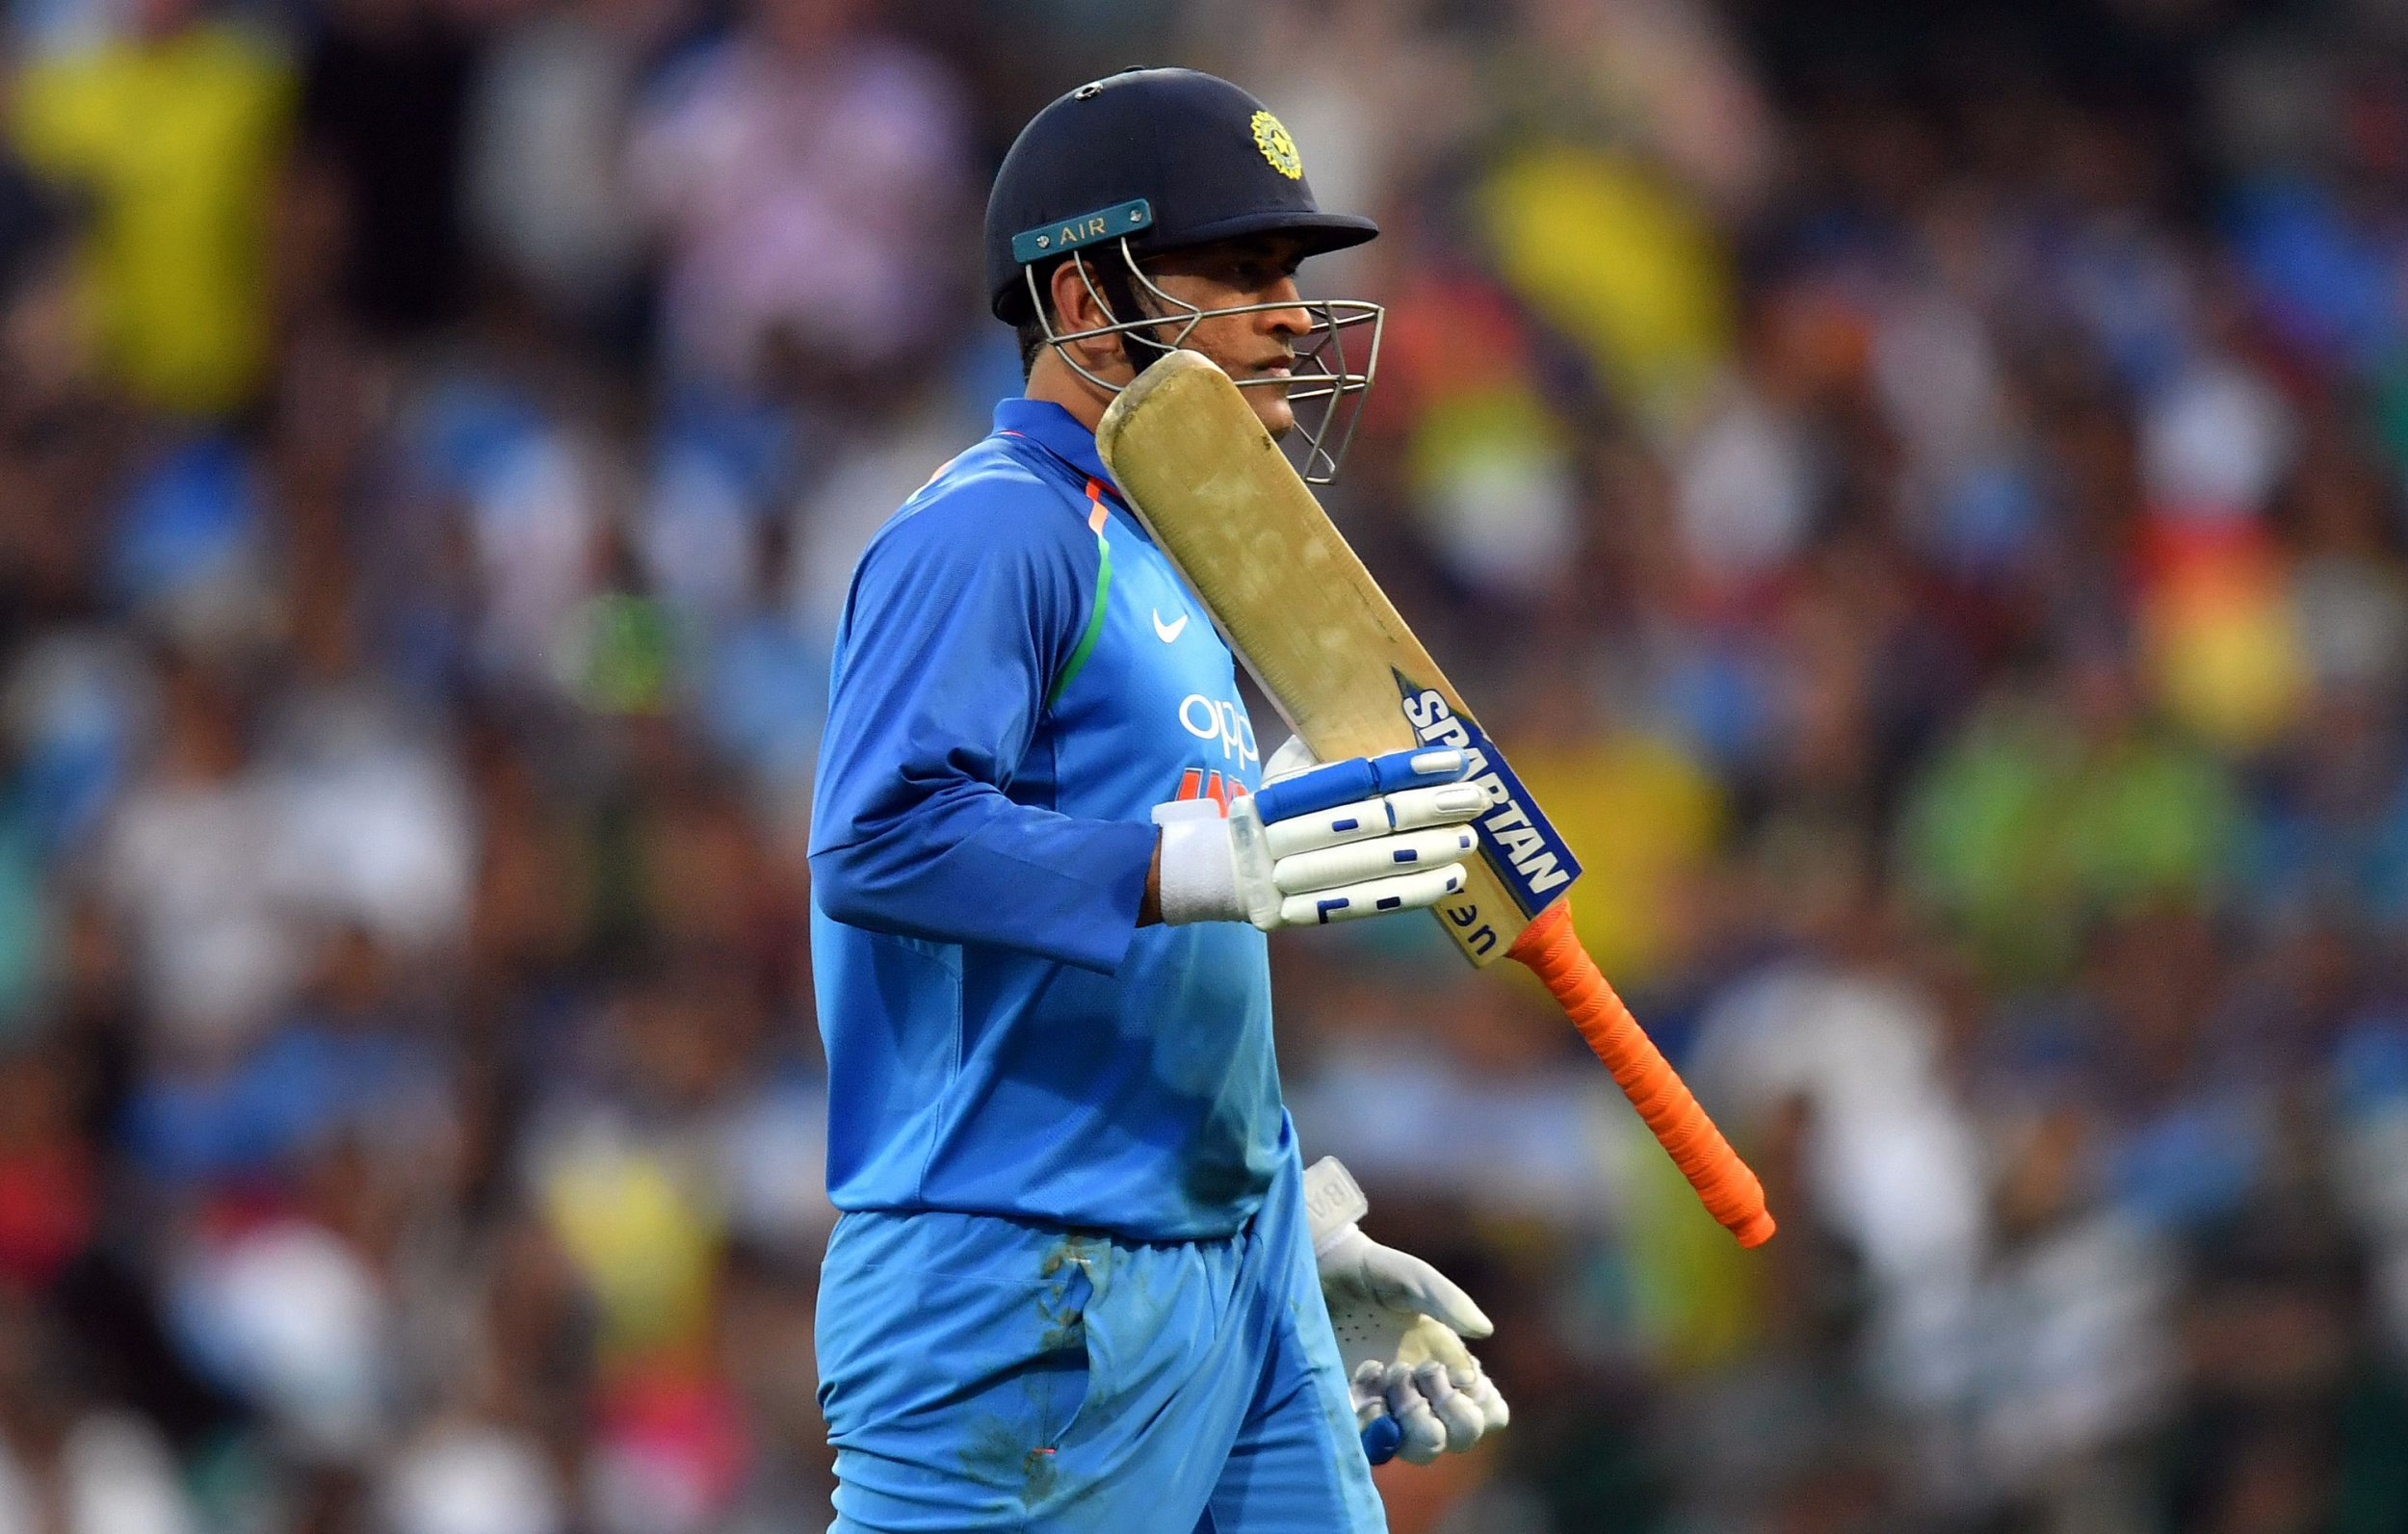 India's batsman Mahendra Singh Dhoni walks back to the pavilion after his dismissal during first one-day international (ODI) match between Australia and India at the Sydney Cricket Ground in Sydney on January 12, 2019. (Photo by Saeed Khan / AFP) / -- IMAGE RESTRICTED TO EDITORIAL USE - STRICTLY NO COMMERCIAL USE --SAEED KHAN/AFP/Getty Images